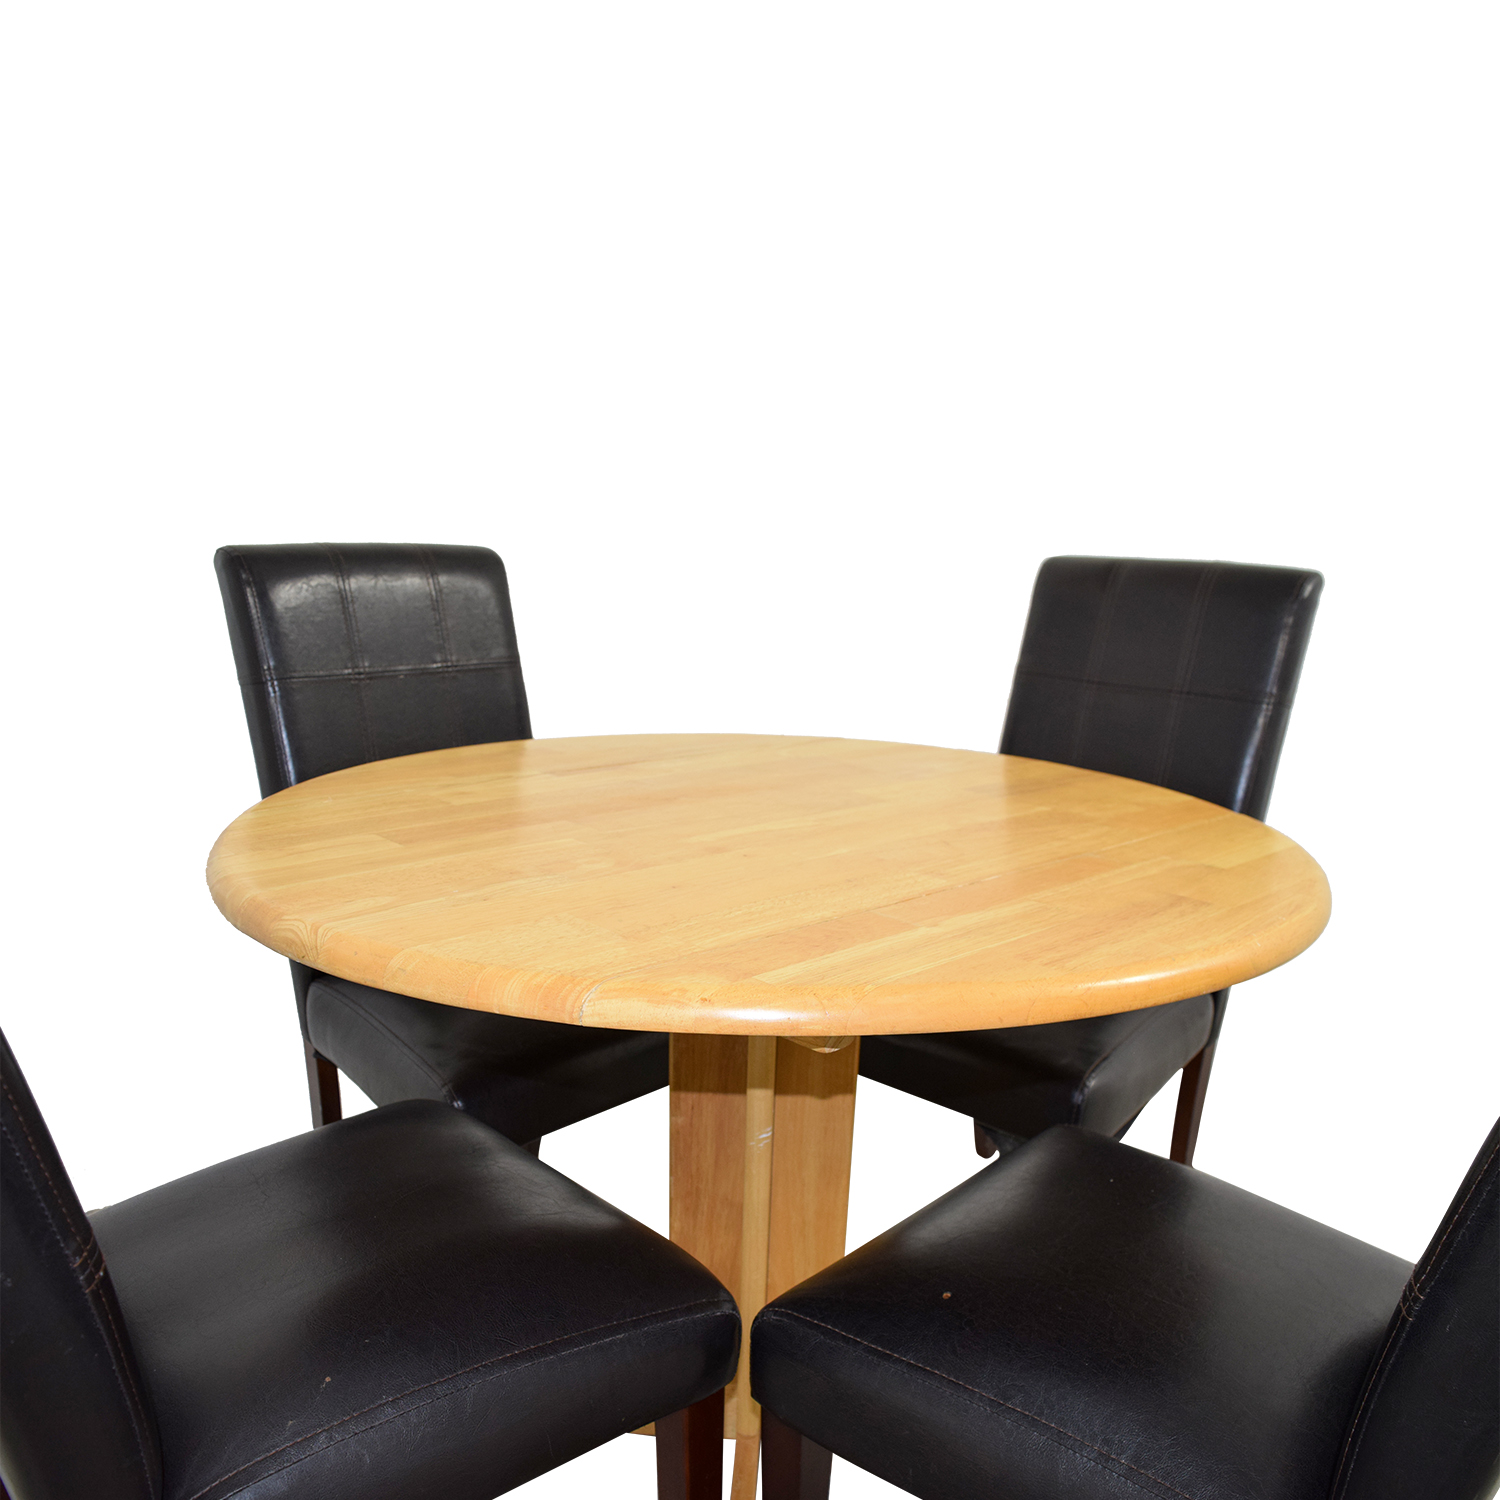 Raymour & Flannigan Raymour & Flannigan Rouch Butcher Block Table with Brown Leather Chairs Tables